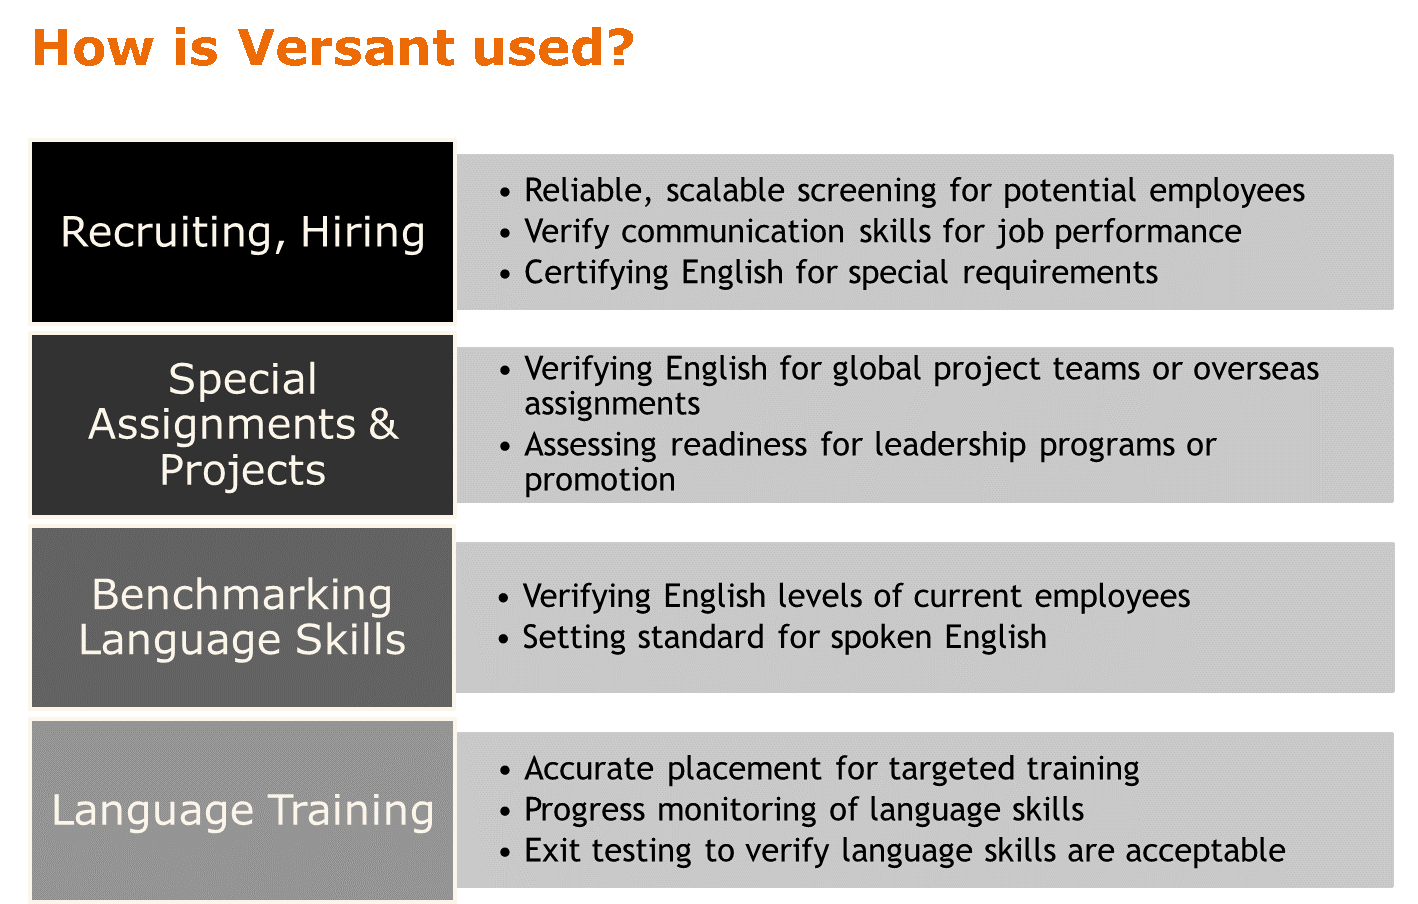 How Versant is used